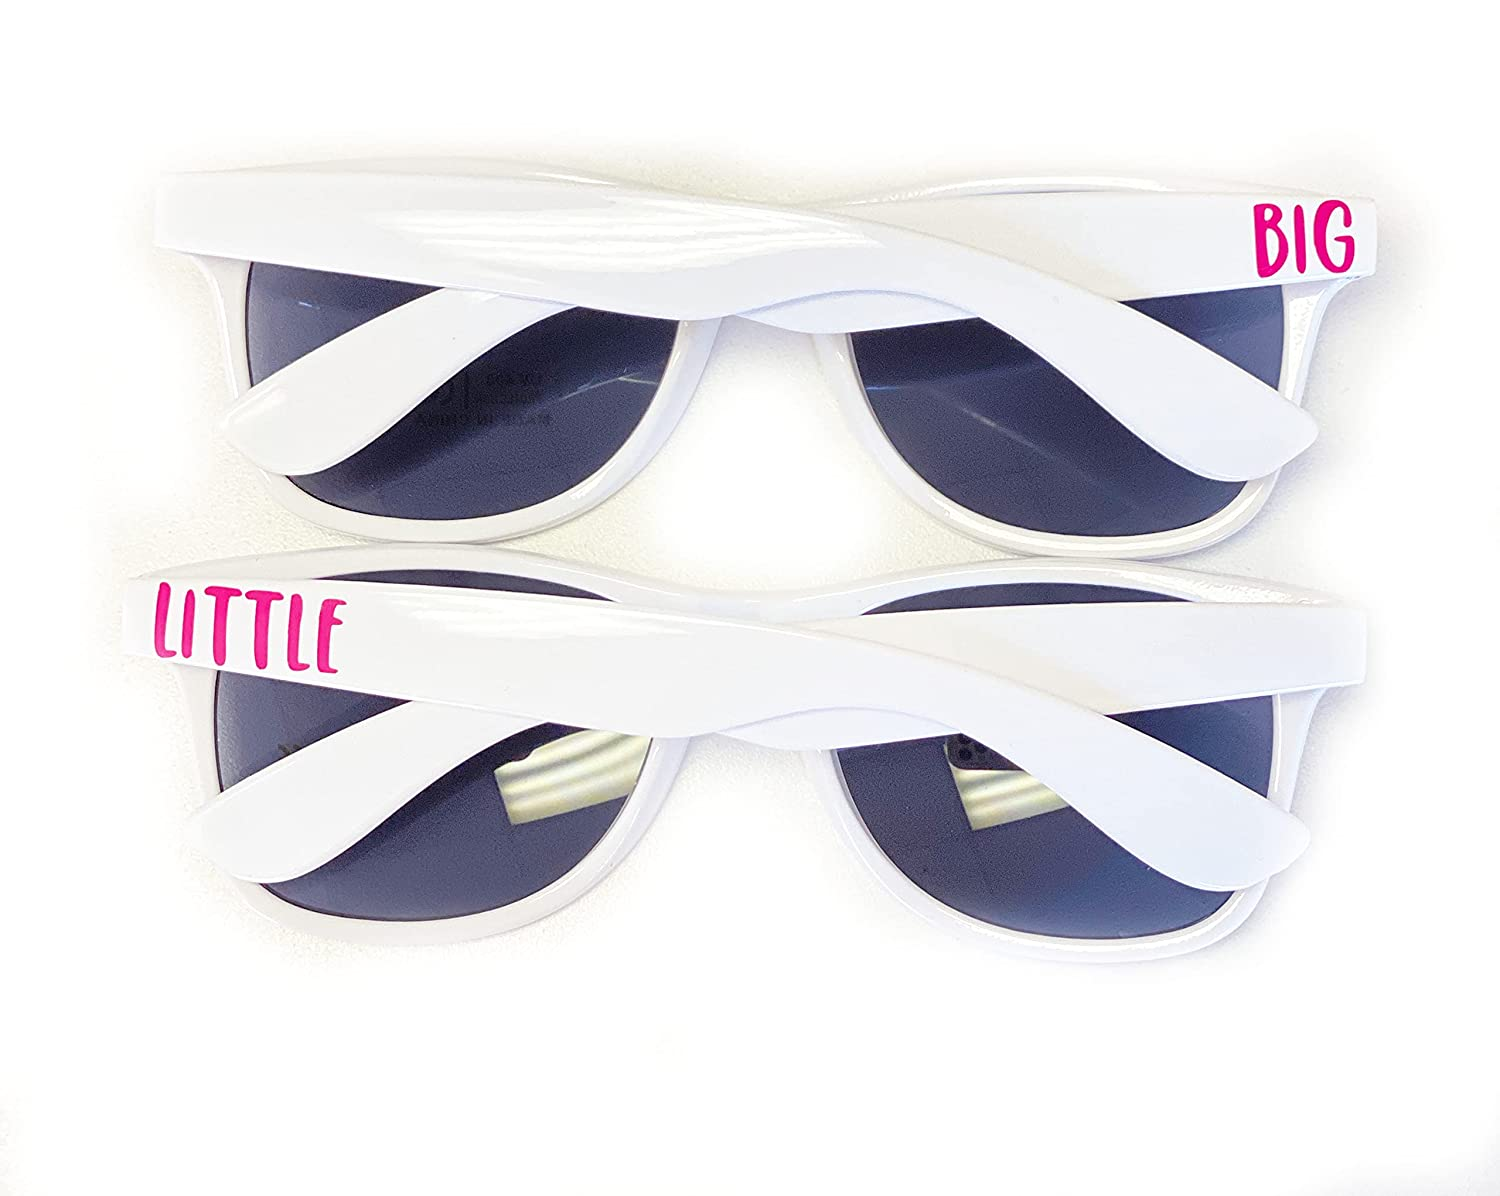 Big Free shipping on posting reviews Attention brand and Little Sunglasses Sorority Gifts